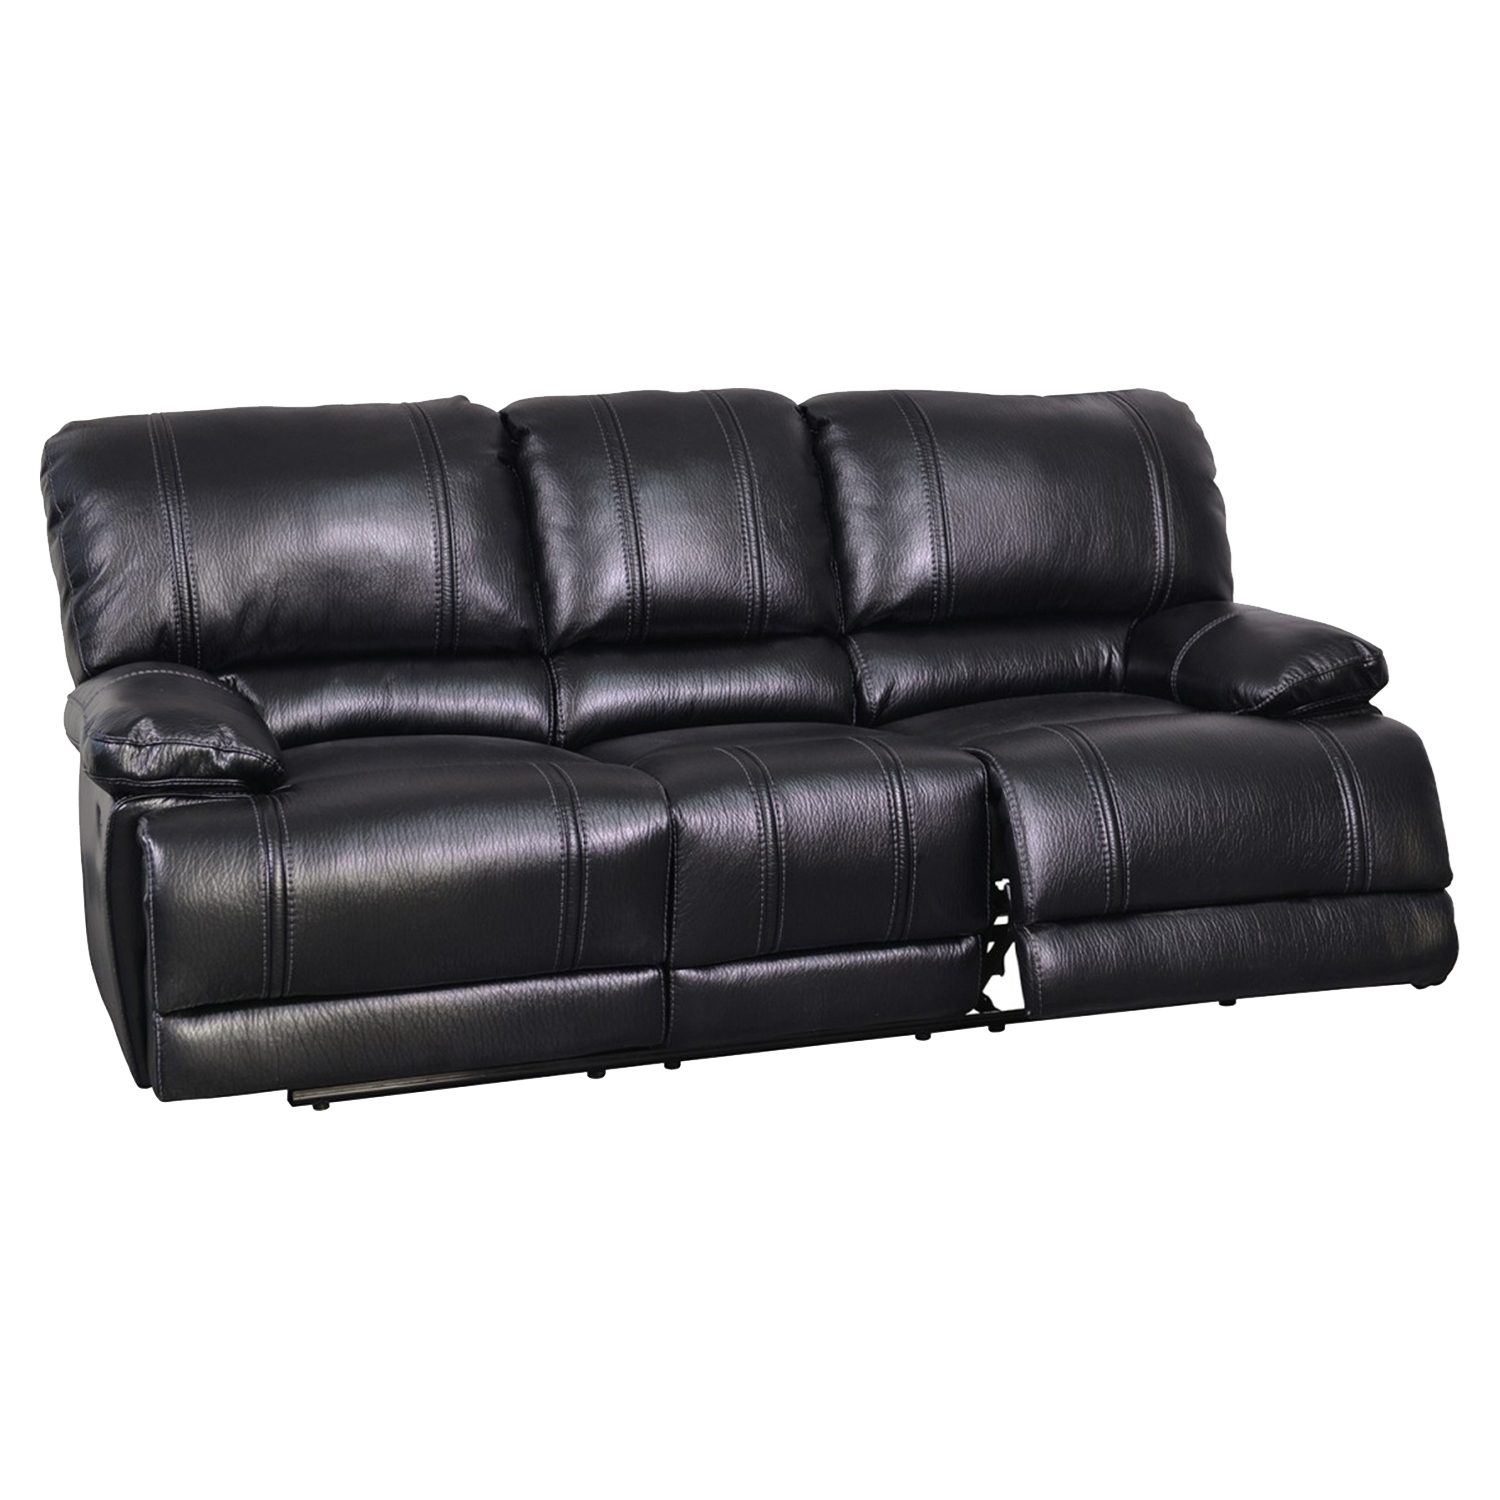 Dalton Reclining Sofa Set in Kelton Black - GLO-U2175-SET